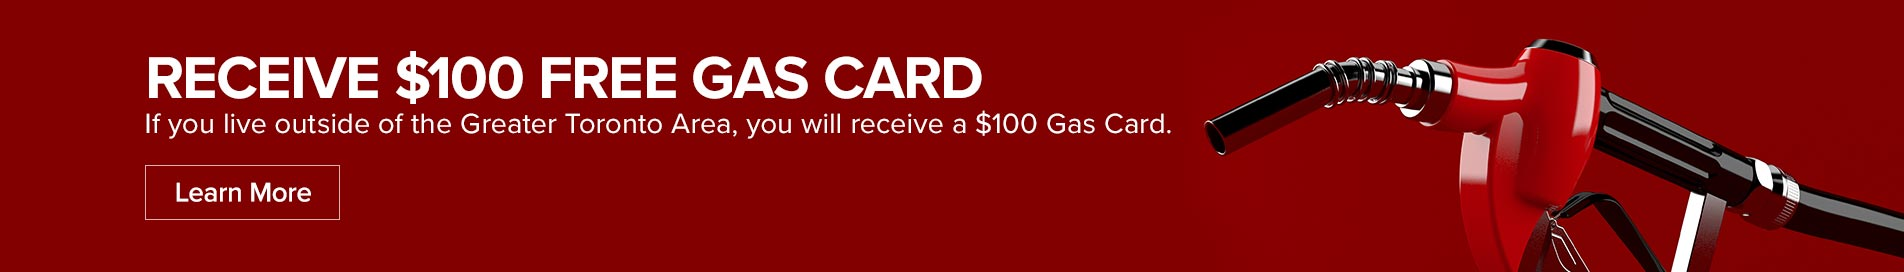 $100 Gas Card Offer